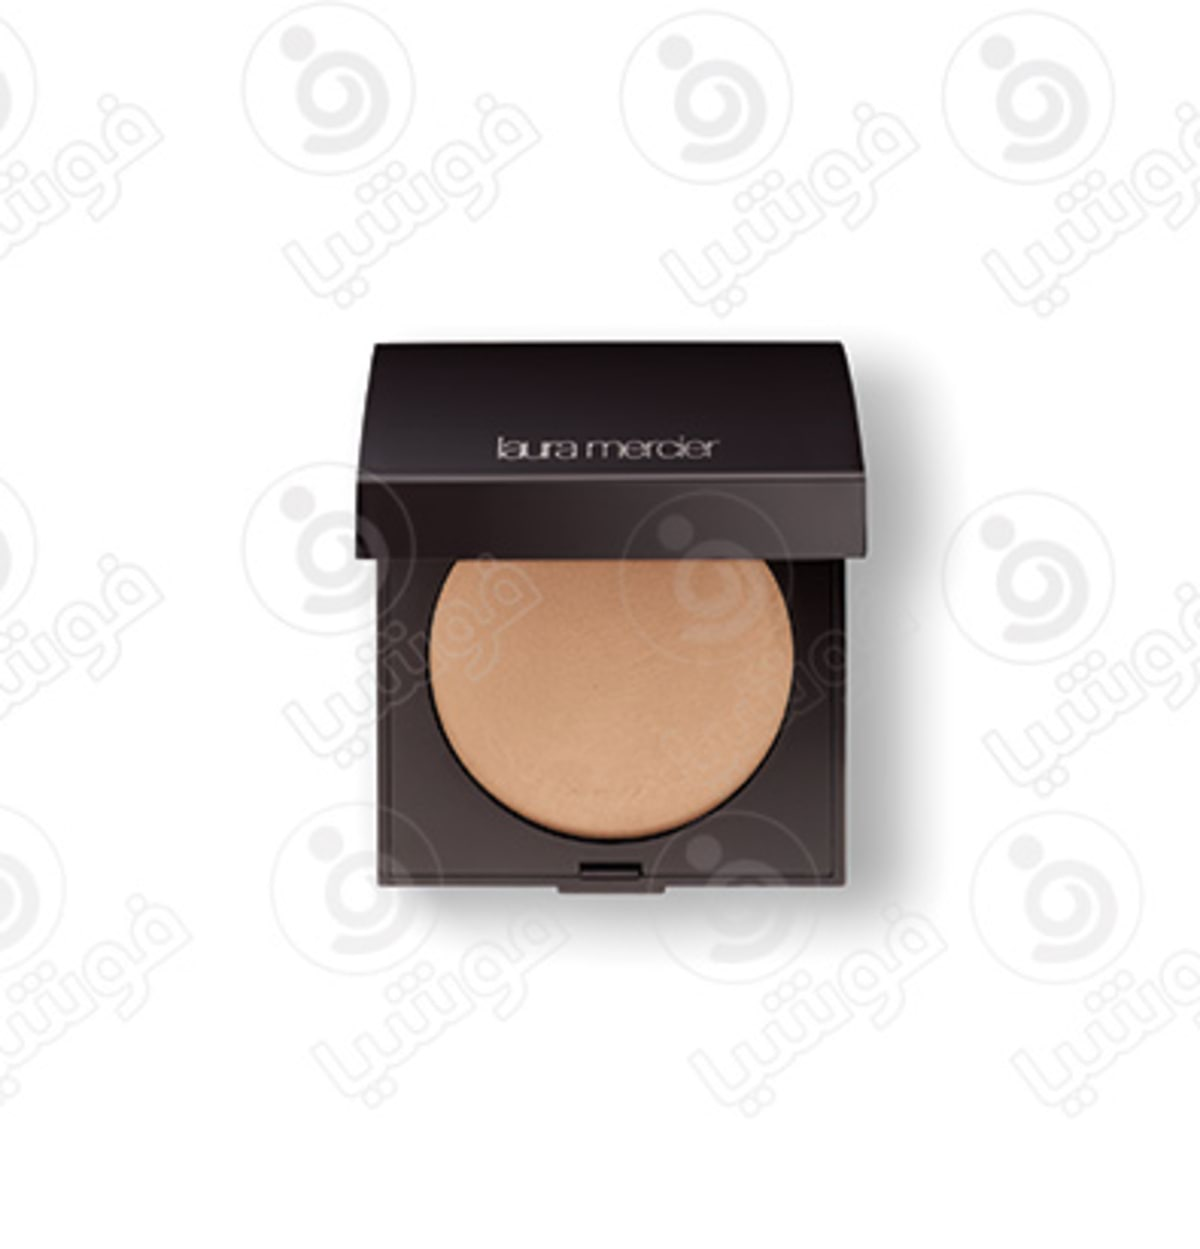 Matte-Radiance-Baked-Powder-AED-184